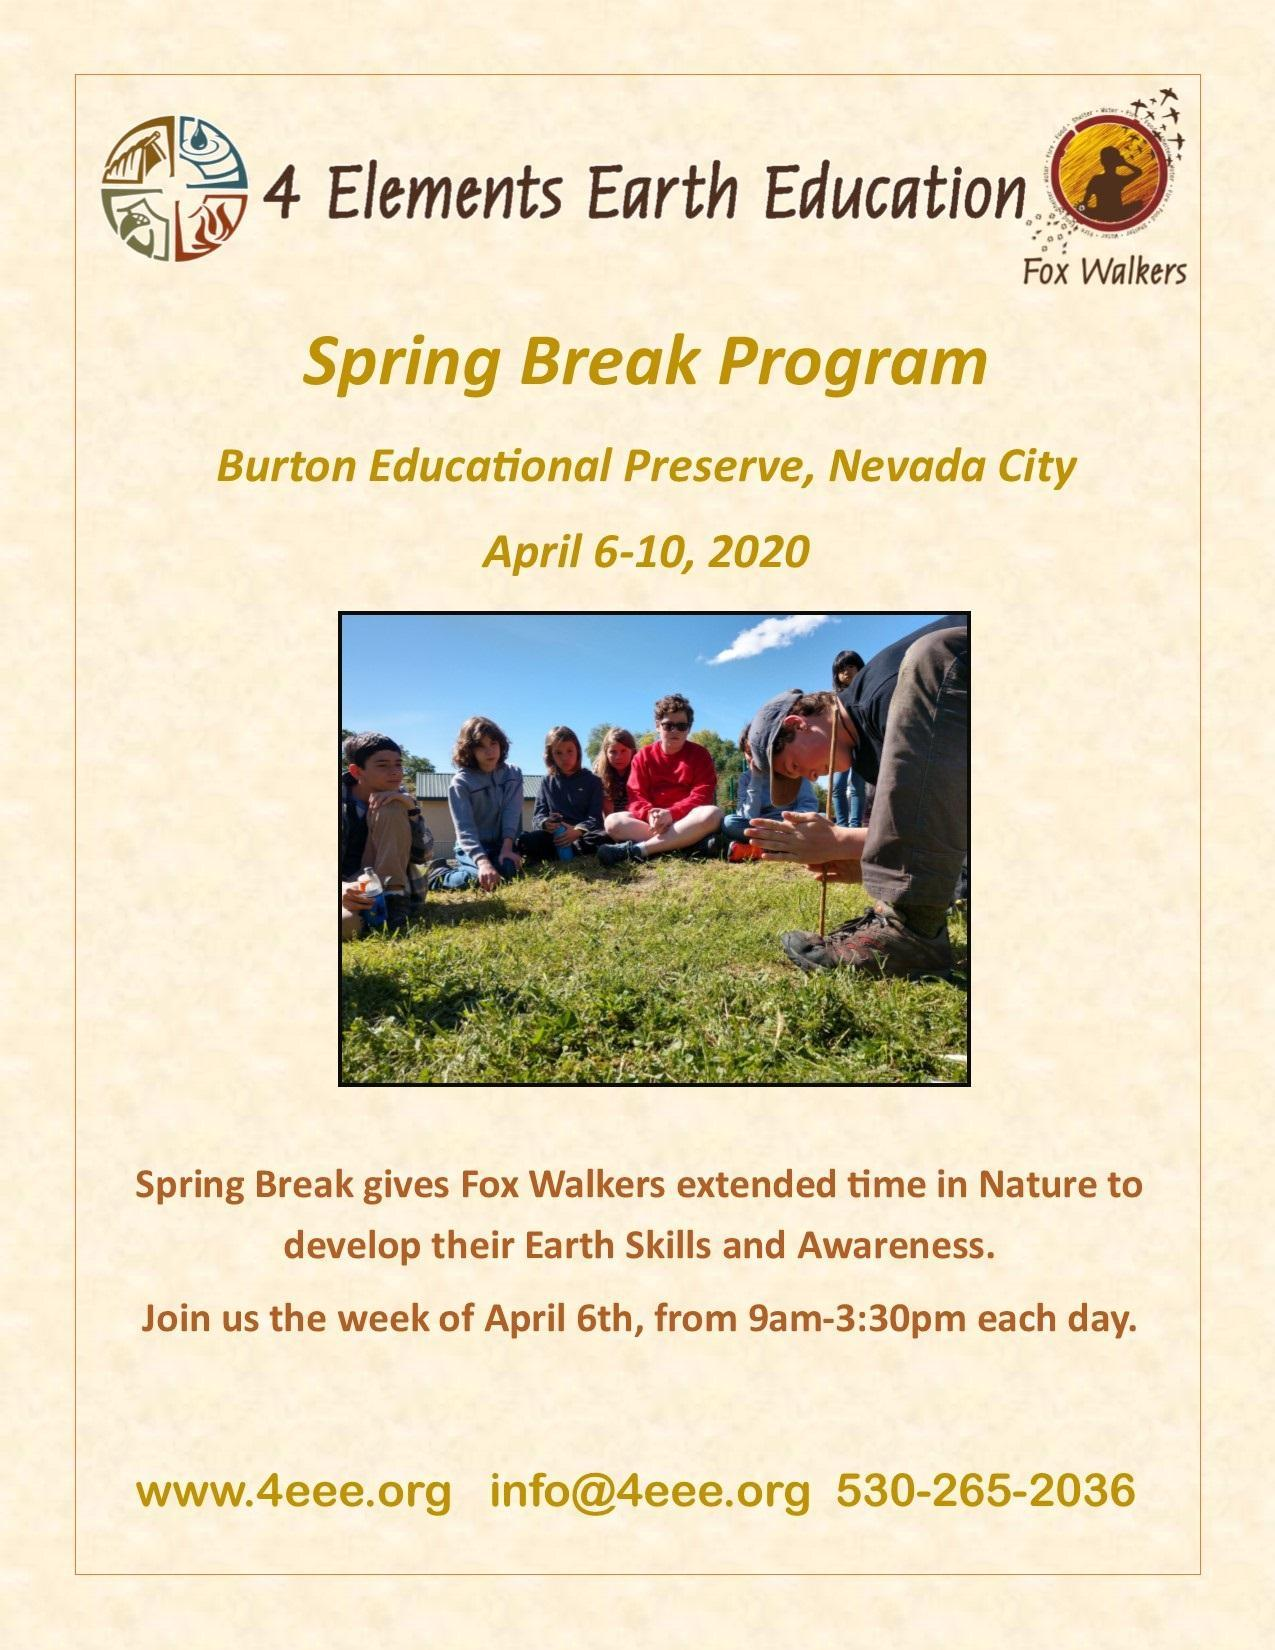 Flyer for Spring Break Program April 6-20 Burton Educational Preserve